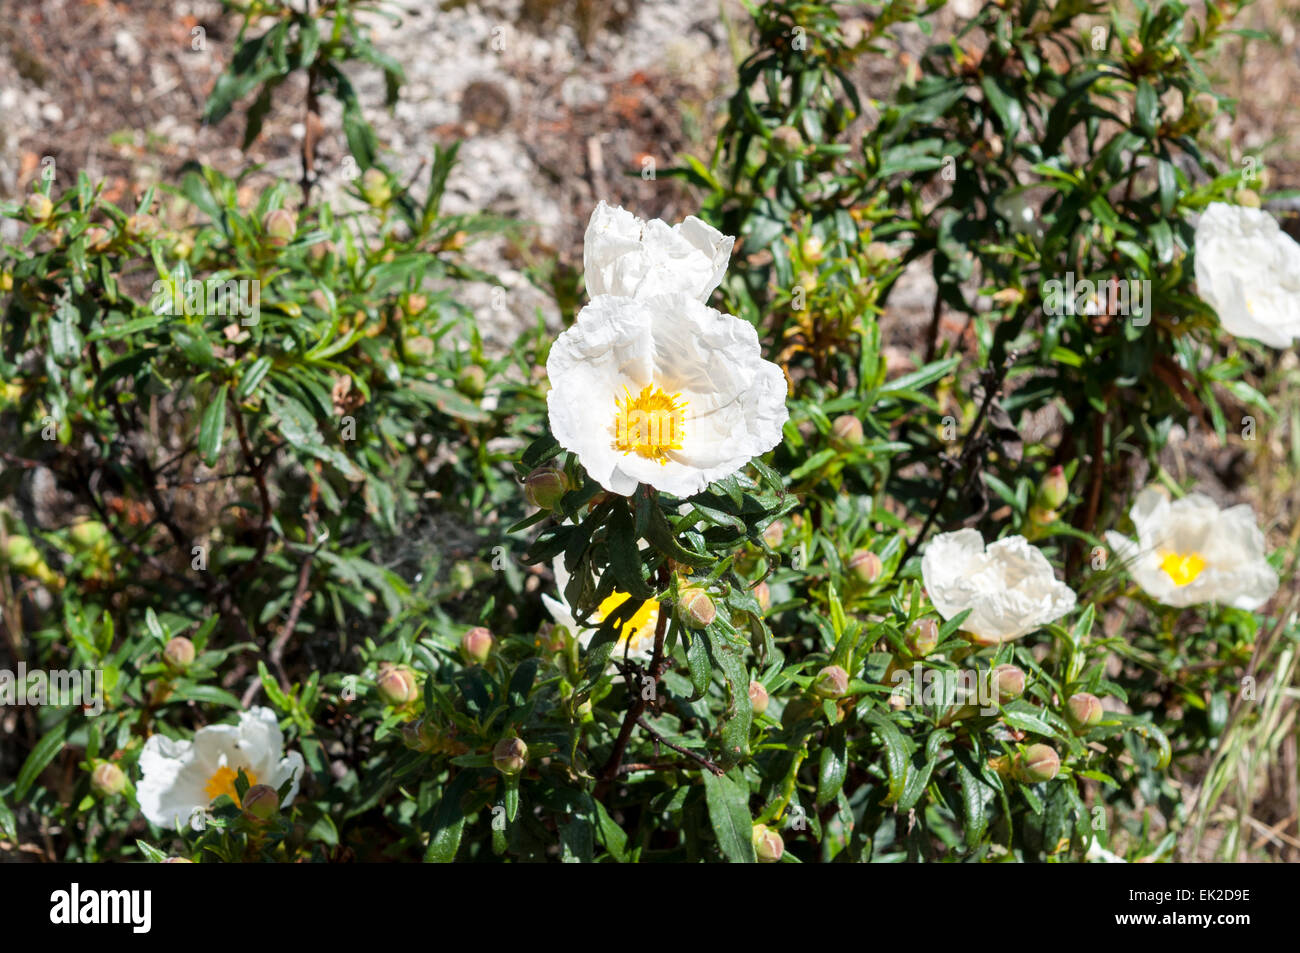 Flowers of Gum rockrose, Cistus ladanifer - Stock Image